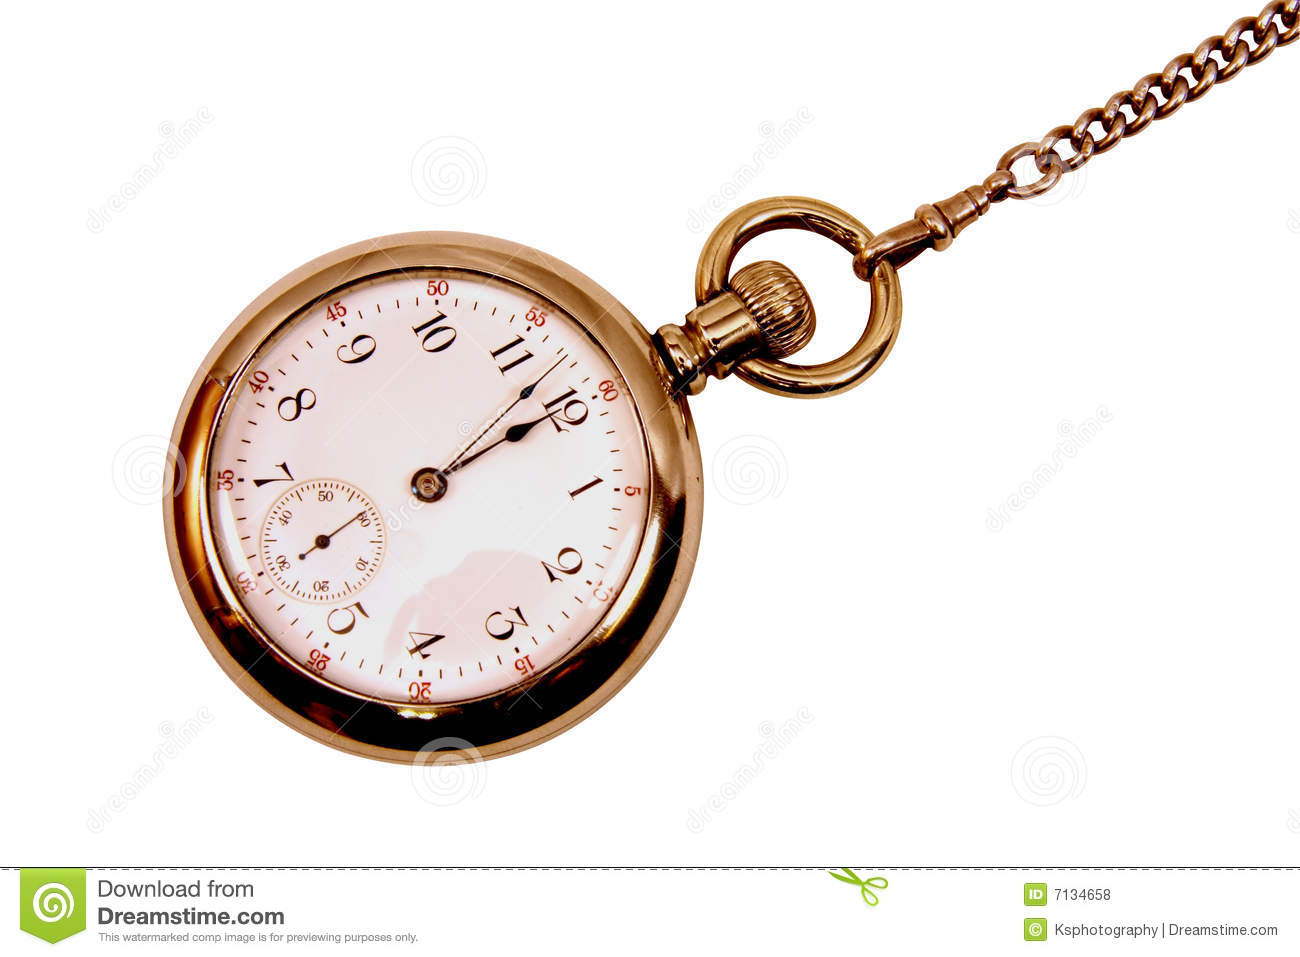 Vintage Pocket Watch On Chain Royalty Free Stock Photos ...